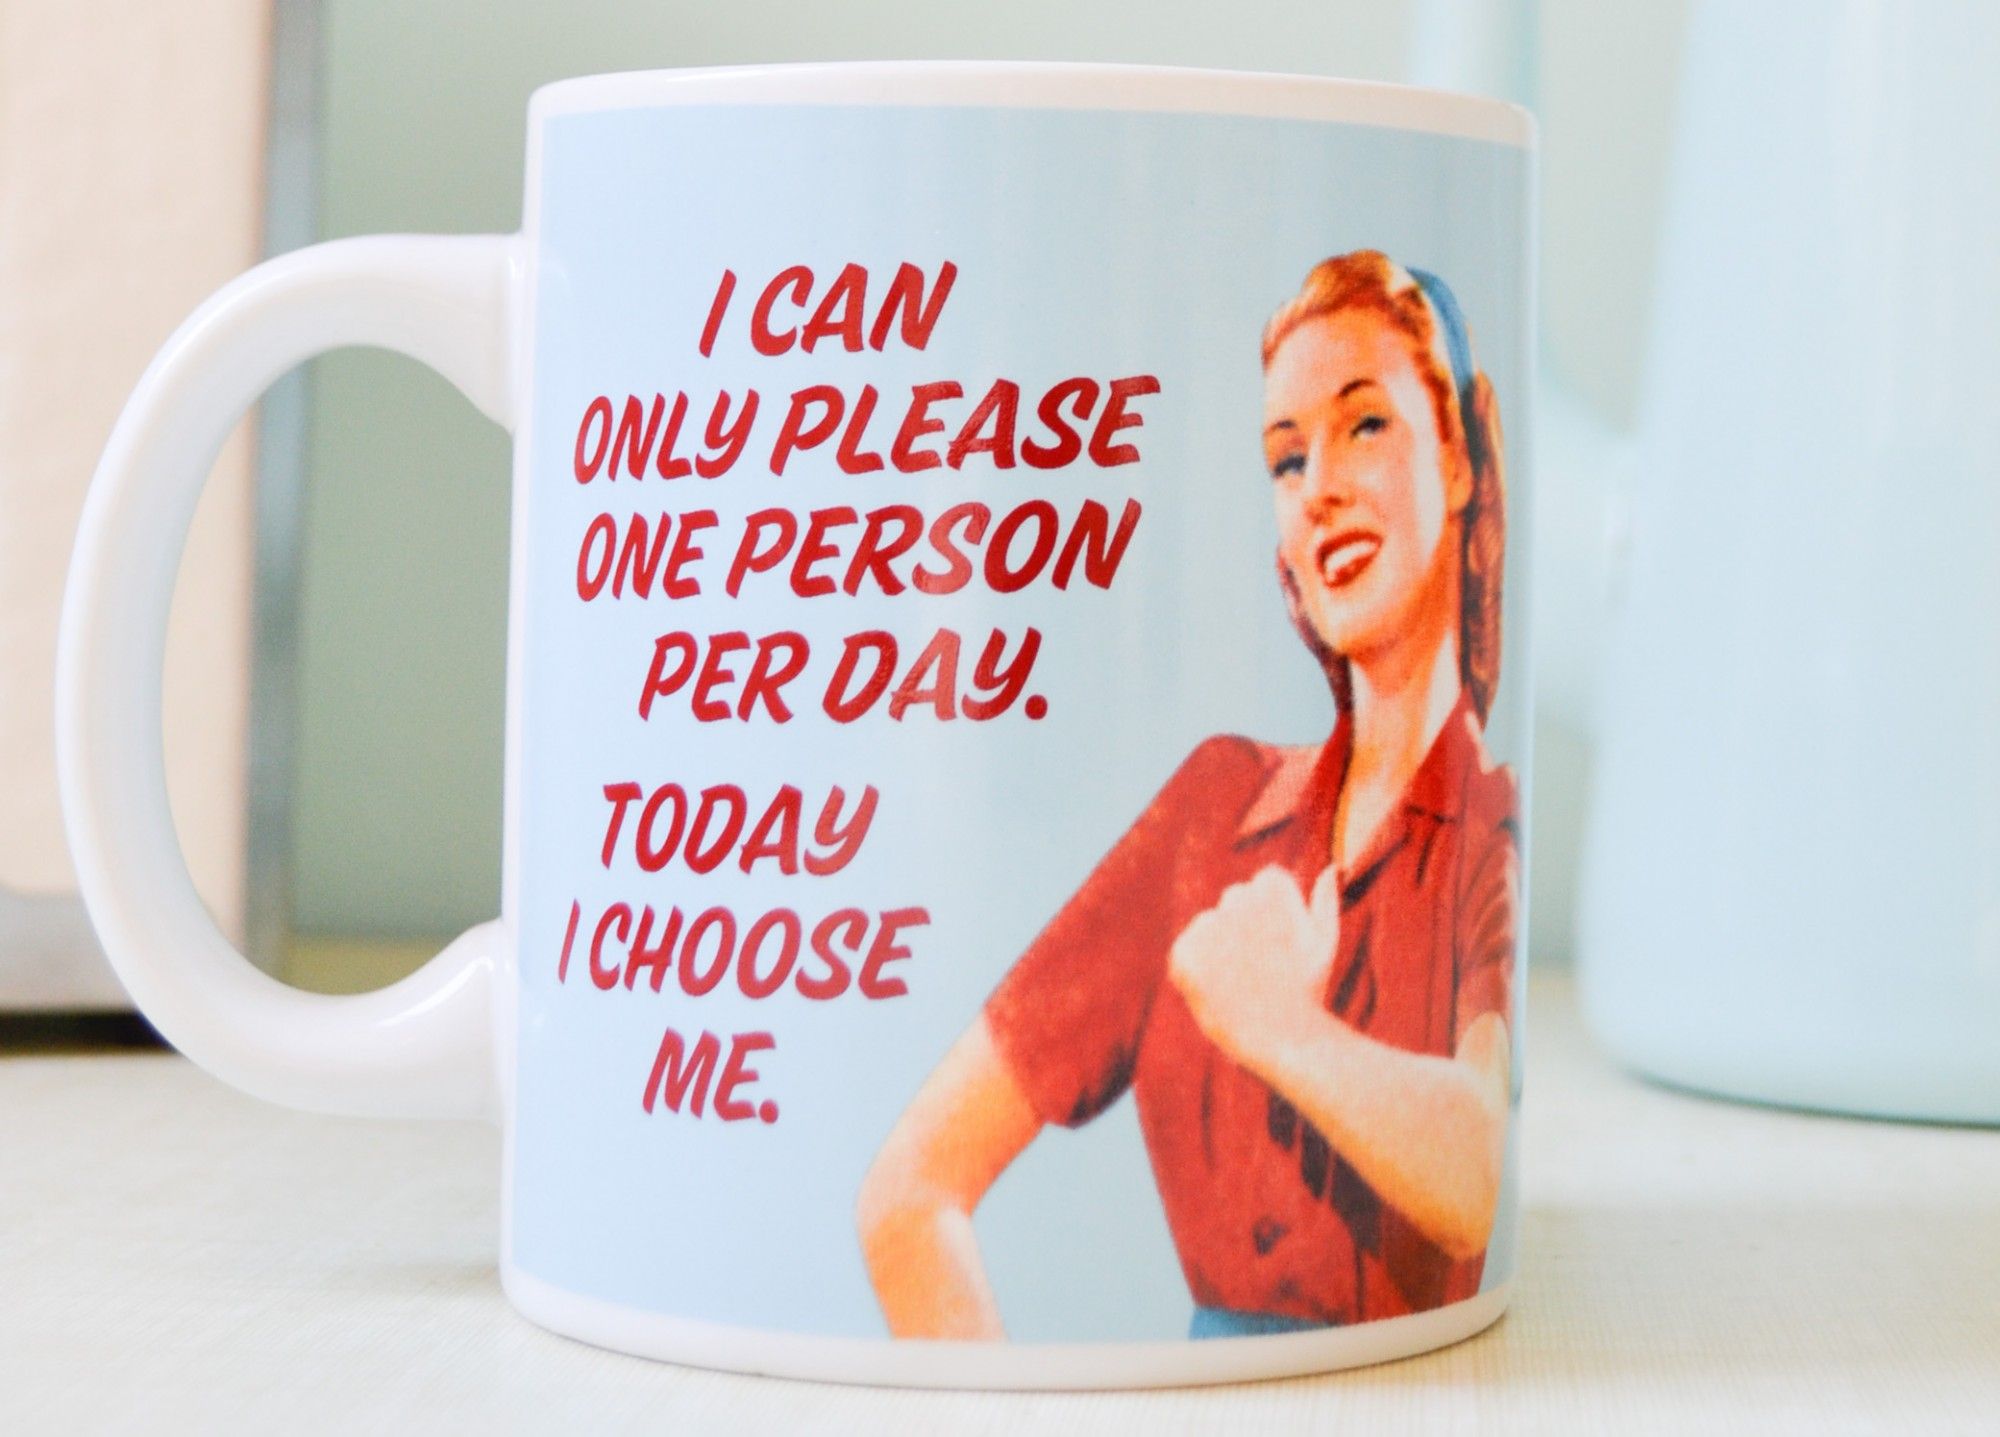 vintage mug pastel blue Betty knows best i can only please one person per day and today I choose me top vintage